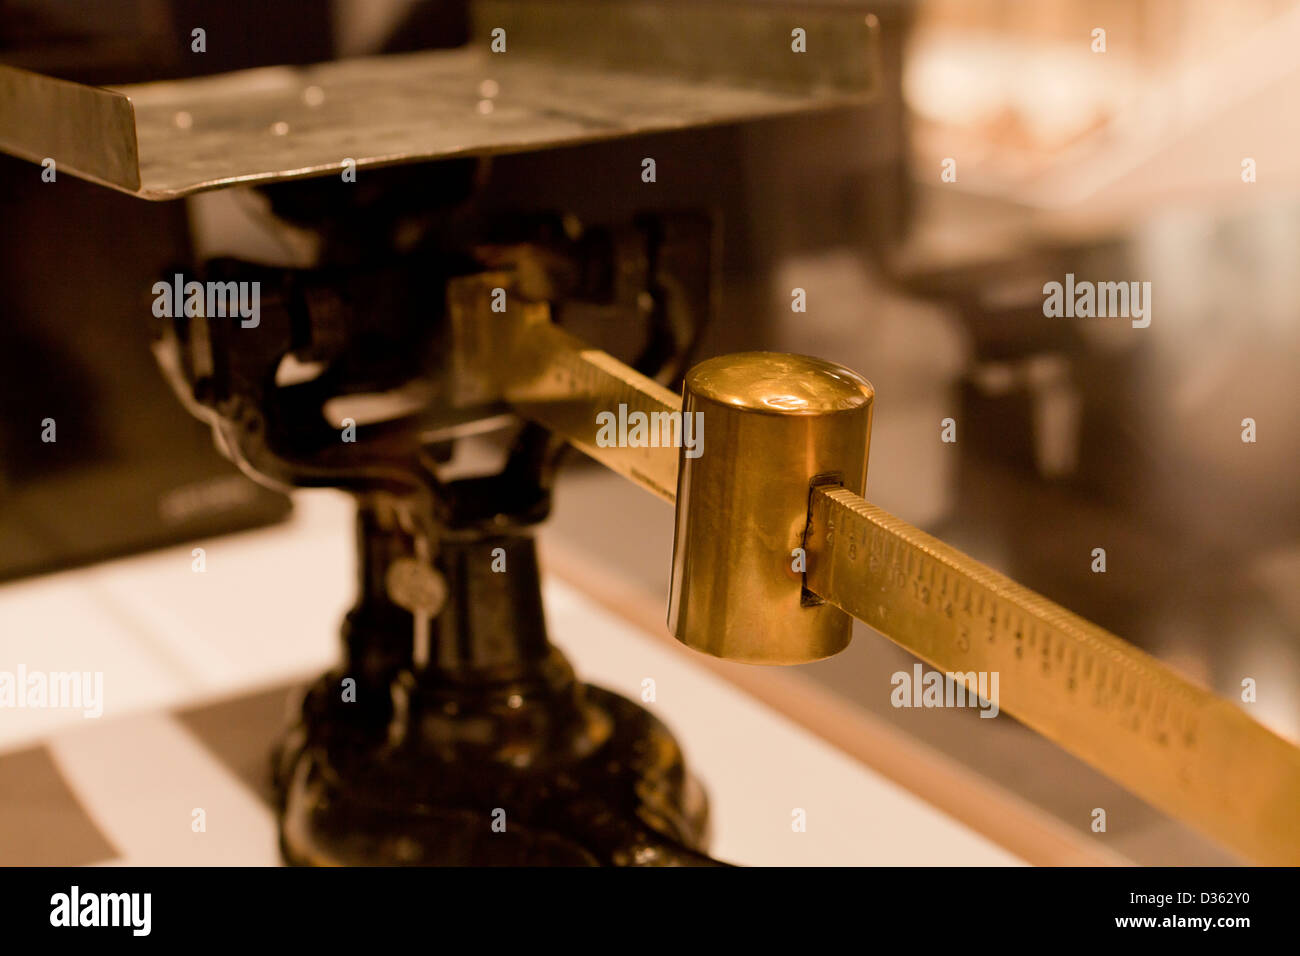 Vintage scale counterweight - Stock Image